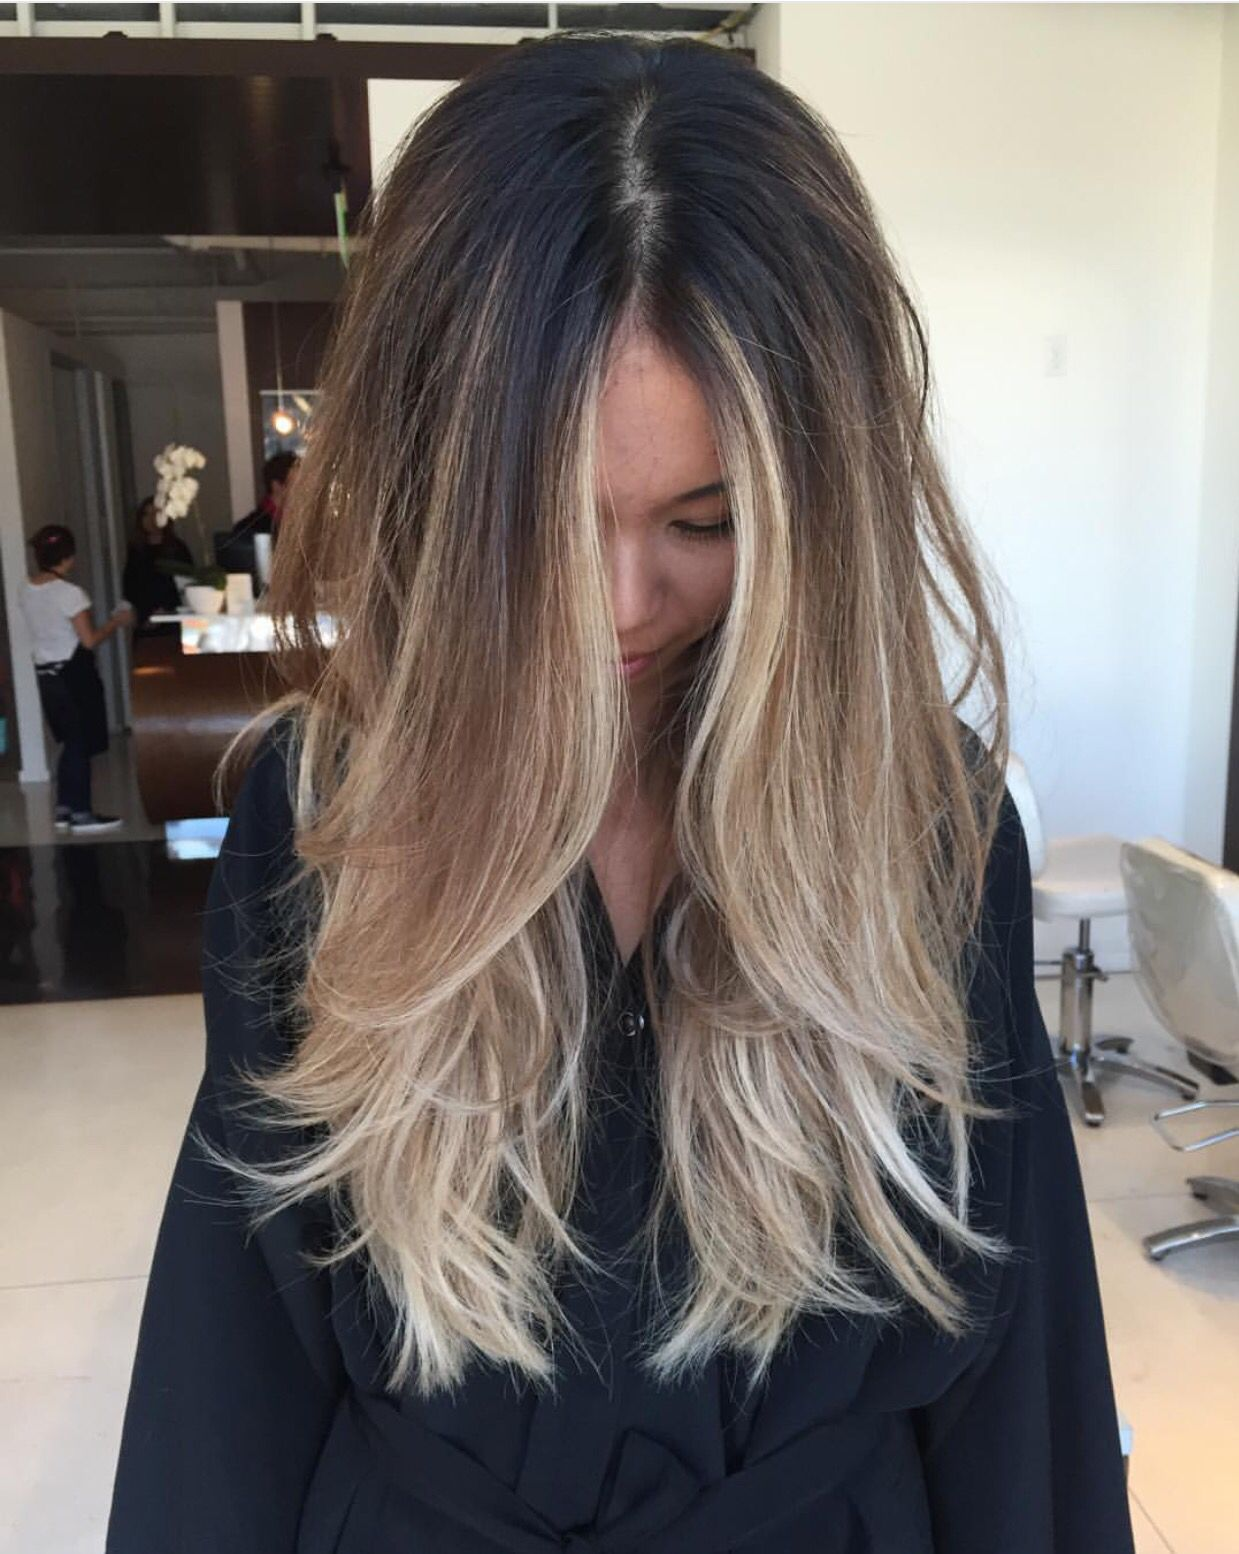 That color... | Wedding | Pinterest | Hair coloring, Hair ...